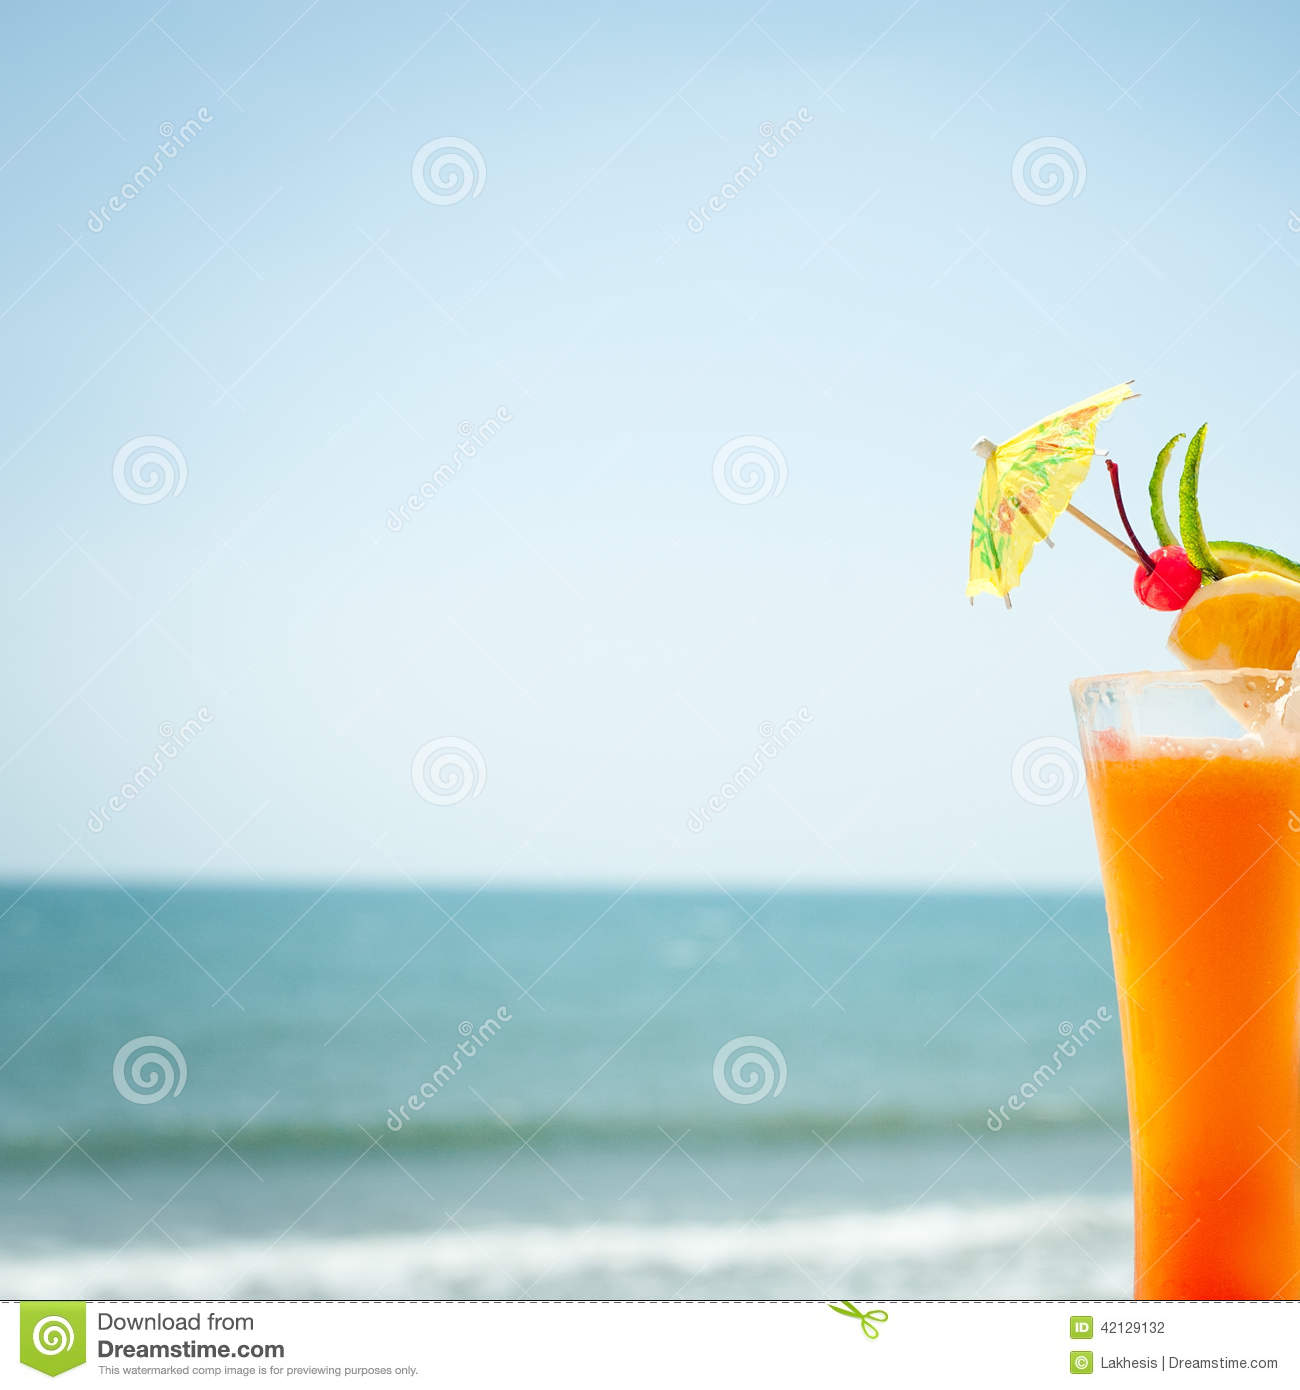 Tequila Sunrise Cocktail With Fruits And Umbrella